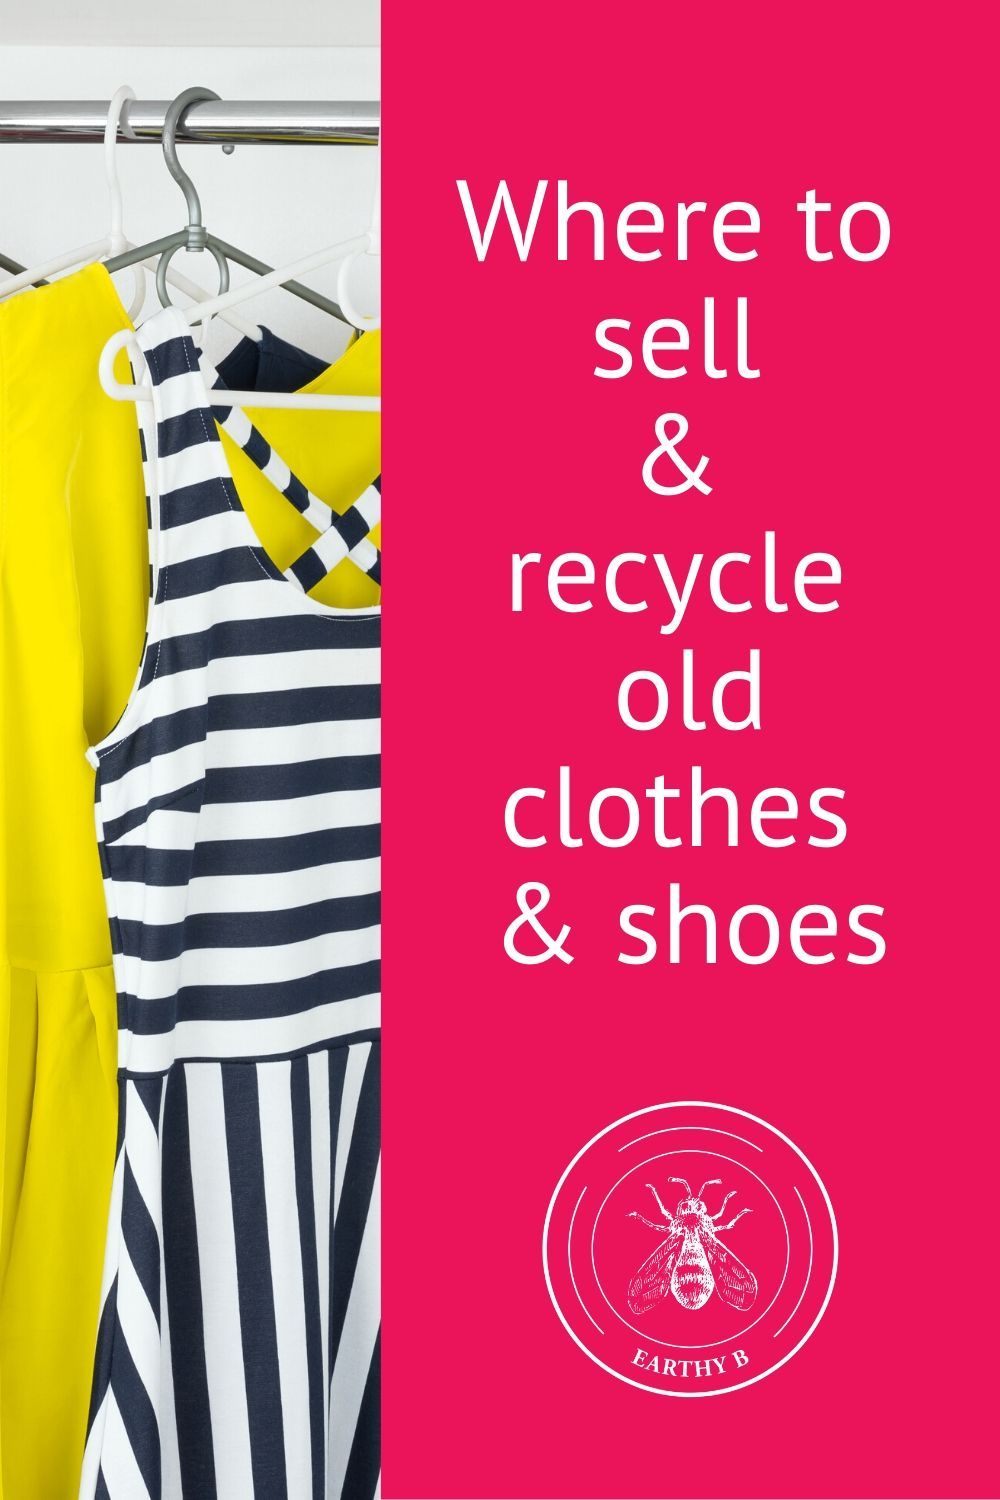 Where To Sell And Recycle Old Clothes And Shoes In 2020 Recycle Old Clothes Selling Used Clothes Sell Old Clothes